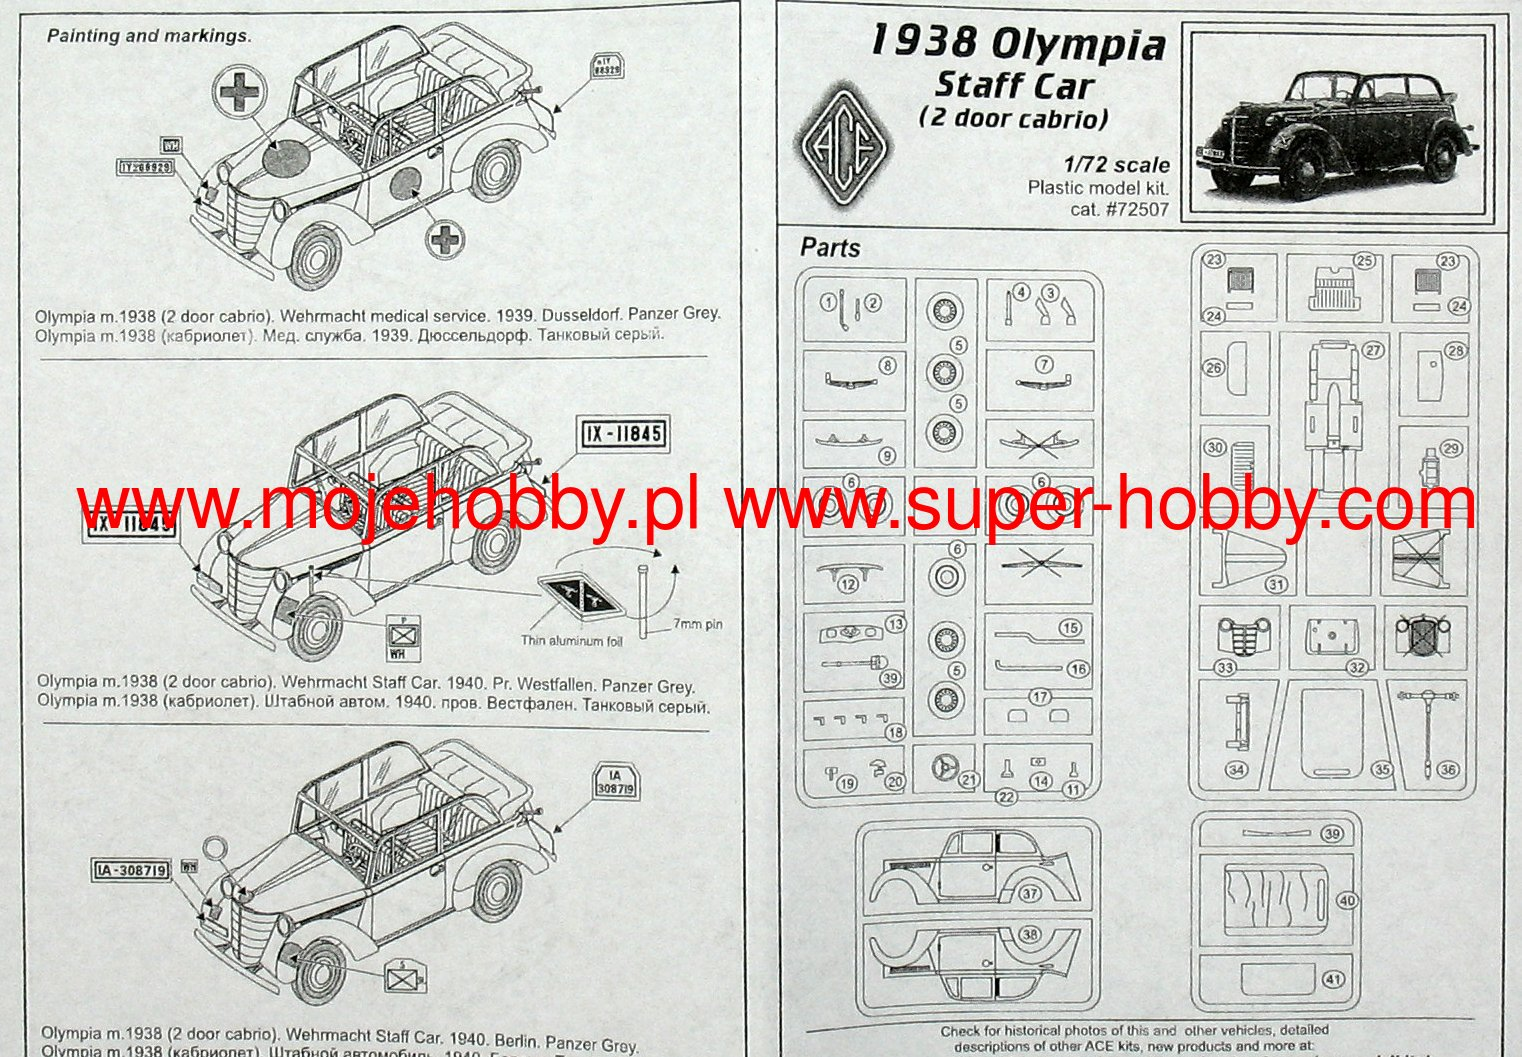 Opel Olympia Stabswagen 1938 Staff Car Cabriolet Ace Wiring Diagram 2 Ace72507 1